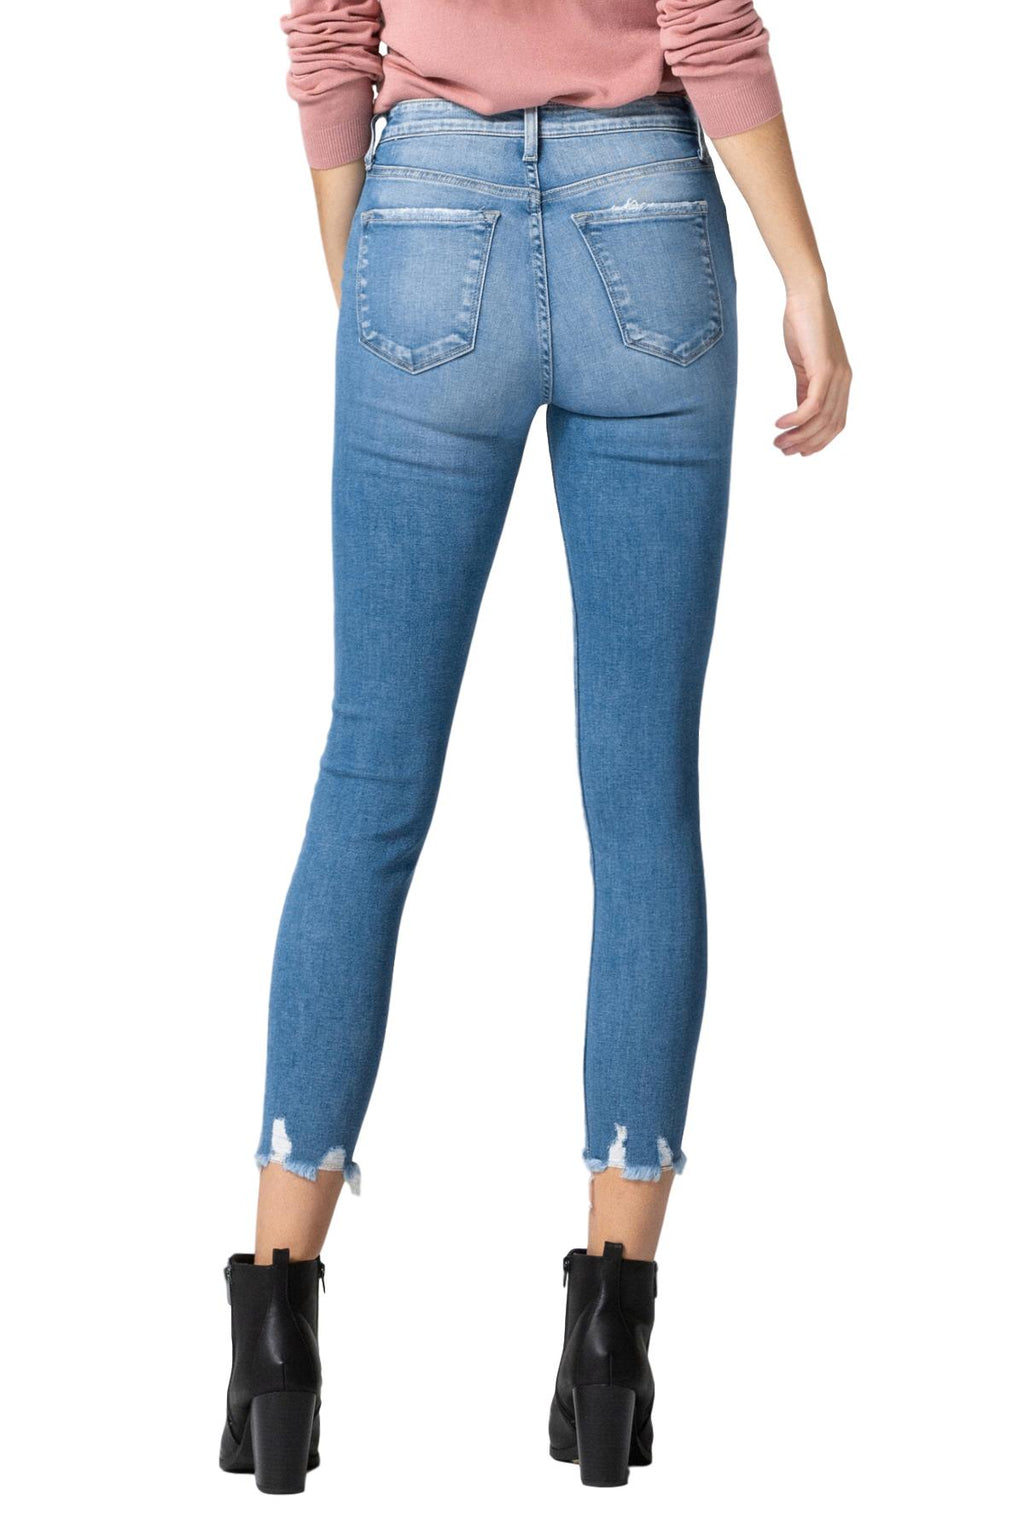 "Flying Monkey Jeans Collection: January 2020 Style Name: Fleeting  Color: Medium Wash Cut: Ankle Skinny, 27"" Inseam Rise: High-Rise, 9-10"" Front Rise Material: 93% COTTON, 5% POLYESTER, 2% LYCRA SPANDEX Machine Wash Separately In Cold Water Stitching: Classic Fly: Zipper Style #: Y3429"